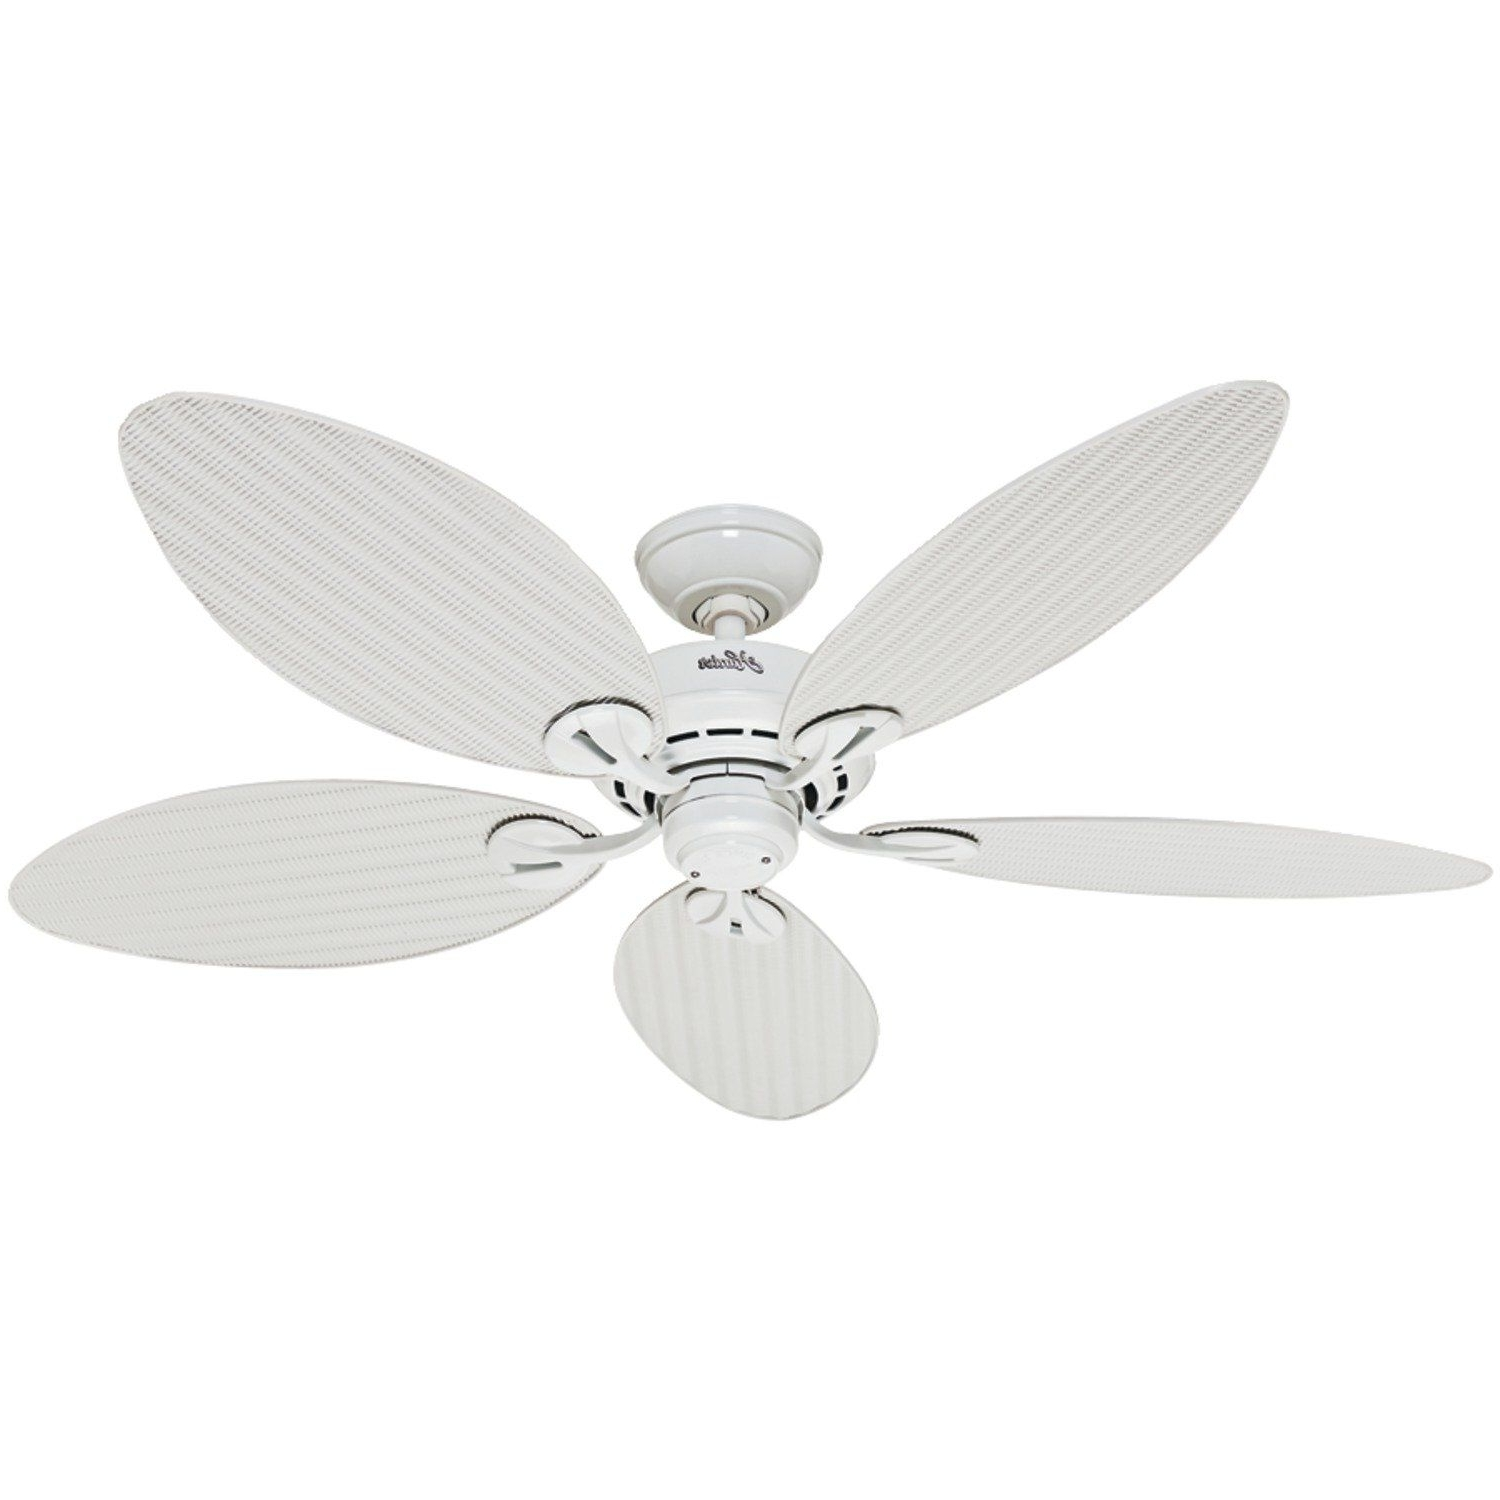 Famous Outdoor Ceiling Fans With Plastic Blades Pertaining To Hunter Fan Company 54097 Bayview 54 Inch Etl Damp Listed Ceiling Fan (View 10 of 20)